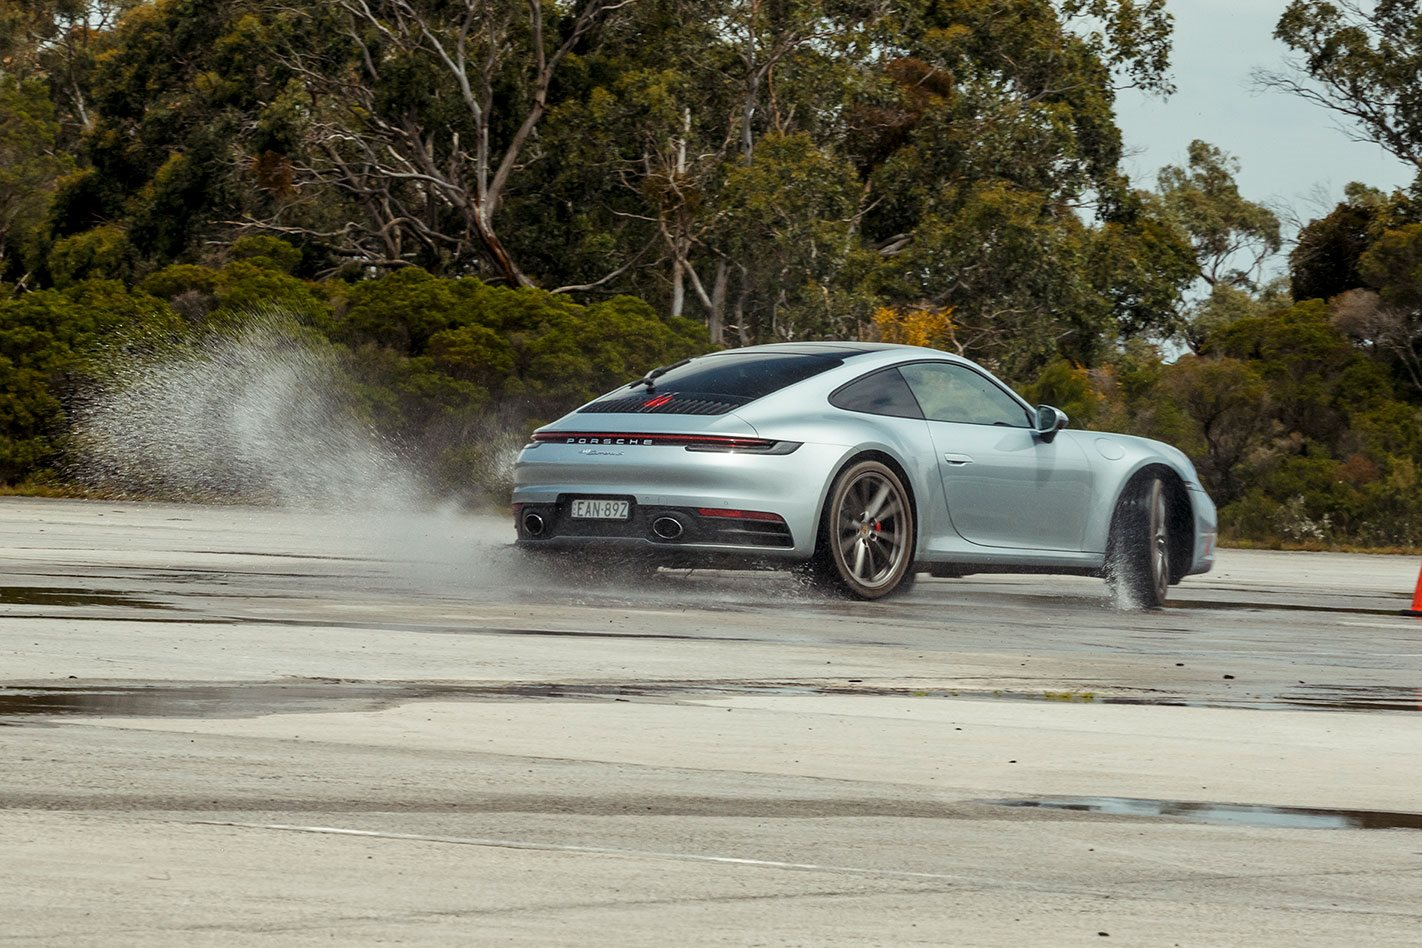 Gallery: Porsche 992 911 takes on Wheels Car of the Year